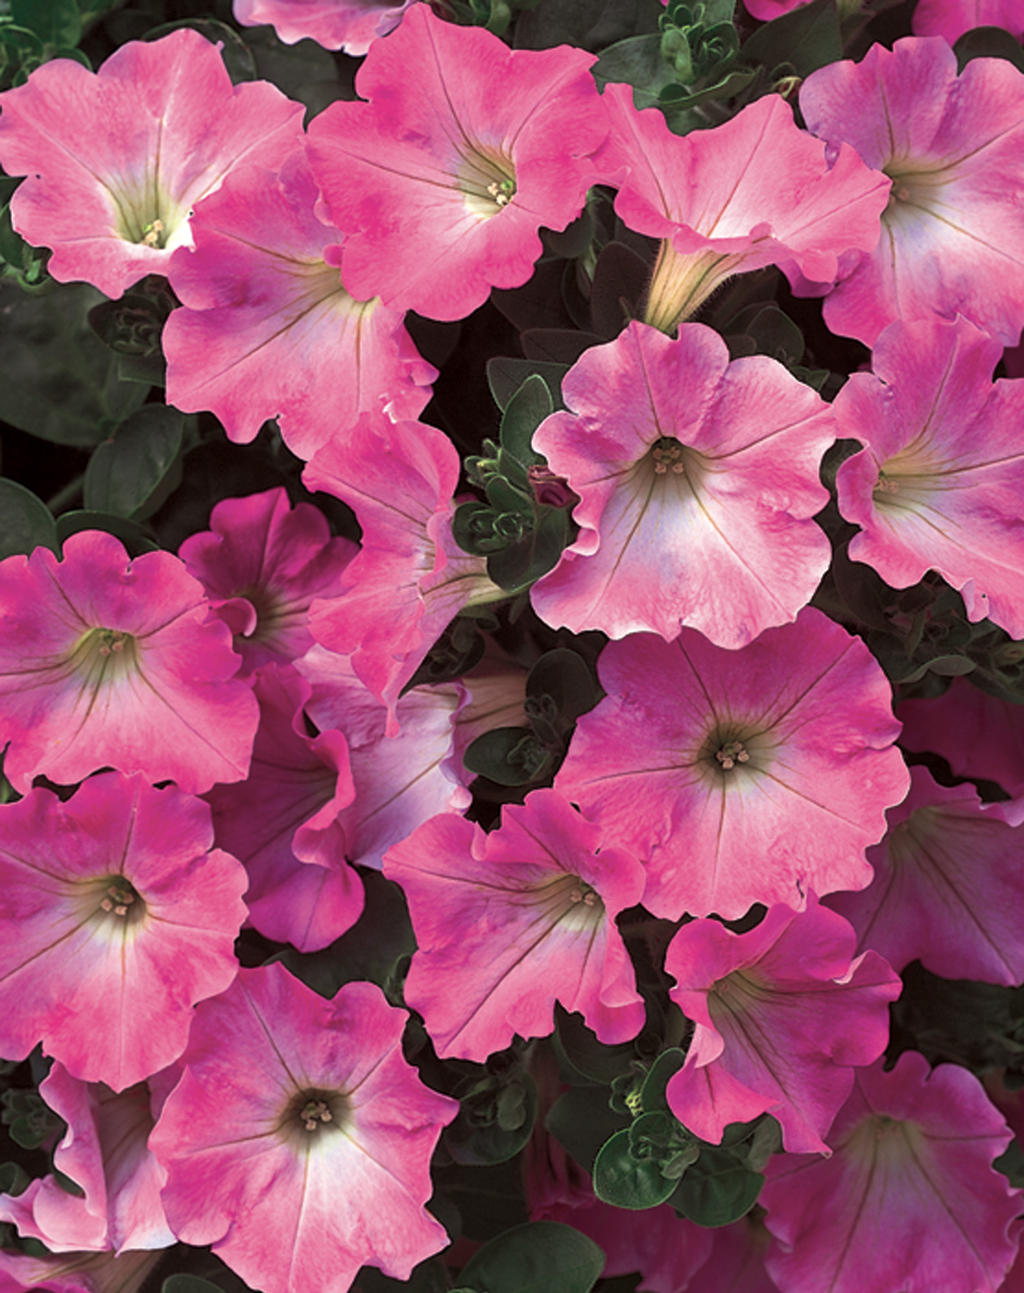 Supertunia Giant Pink Petunia Hybrid Images Proven Winners